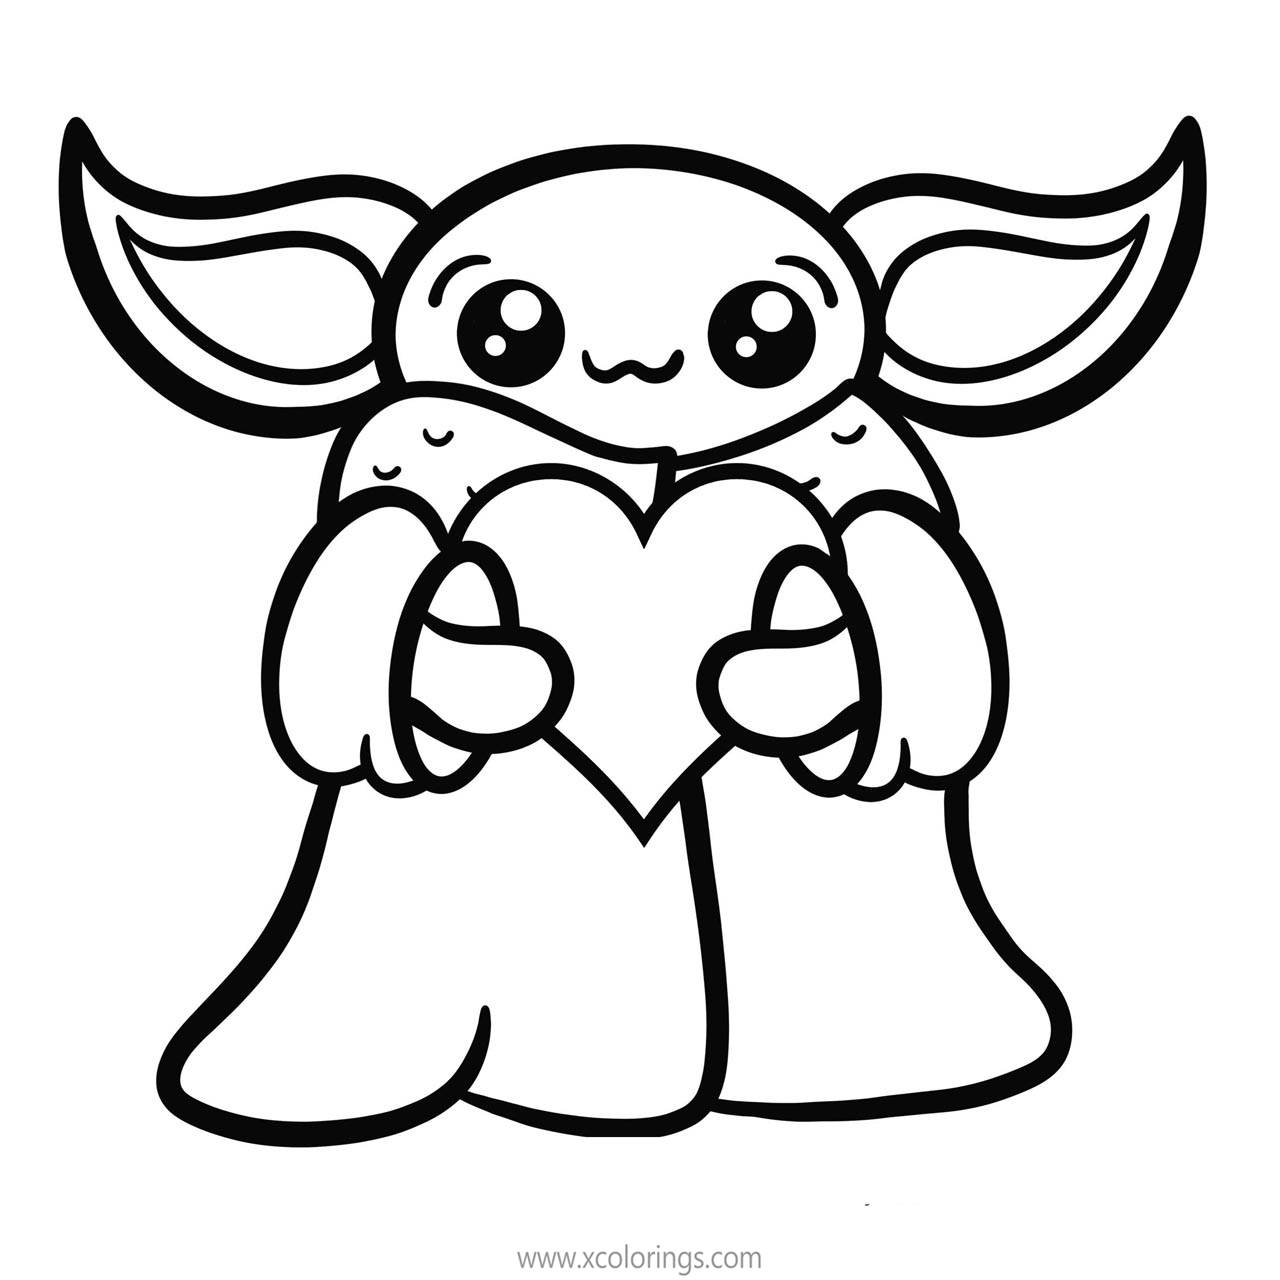 Cute Baby Yoda Coloring Pages By Fishbiscuit5 Xcolorings Com